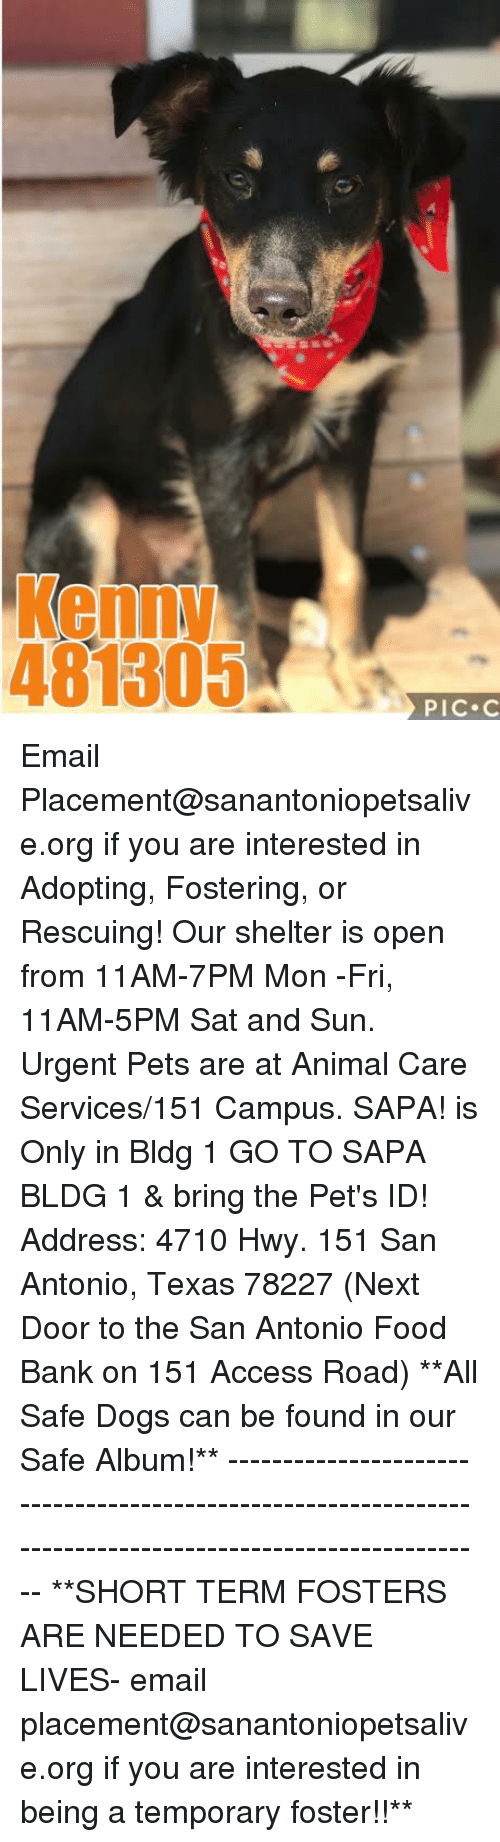 Dogs, Food, and Memes: Kenny  481305  PIC C Email Placement@sanantoniopetsalive.org if you are interested in Adopting, Fostering, or Rescuing!  Our shelter is open from 11AM-7PM Mon -Fri, 11AM-5PM Sat and Sun.  Urgent Pets are at Animal Care Services/151 Campus. SAPA! is Only in Bldg 1 GO TO SAPA BLDG 1 & bring the Pet's ID! Address: 4710 Hwy. 151 San Antonio, Texas 78227 (Next Door to the San Antonio Food Bank on 151 Access Road)  **All Safe Dogs can be found in our Safe Album!** ---------------------------------------------------------------------------------------------------------- **SHORT TERM FOSTERS ARE NEEDED TO SAVE LIVES- email placement@sanantoniopetsalive.org if you are interested in being a temporary foster!!**